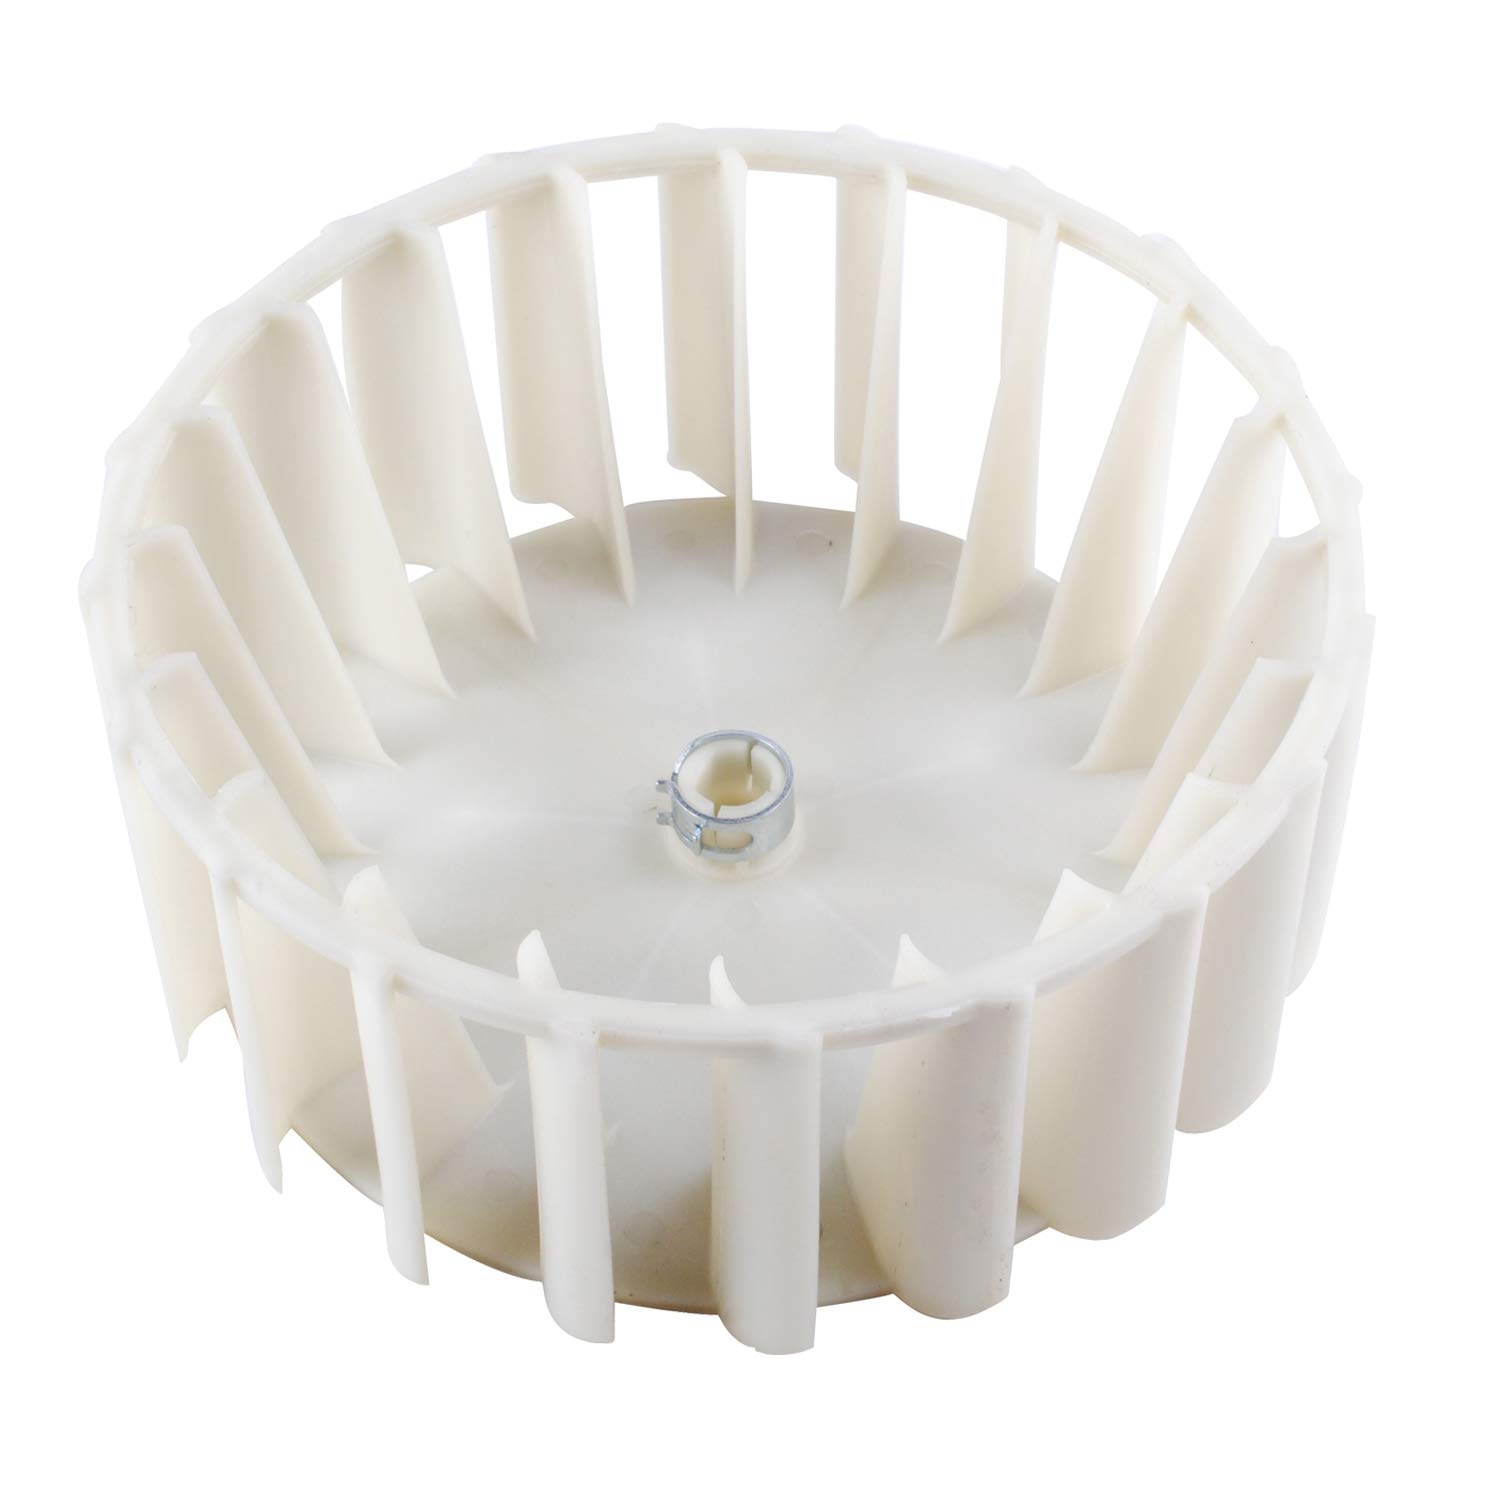 Wadoy Y303836 Blower Wheel for Maytag Dryer Replaces Whirlpool 303836, 312913, AP4294048, 1245880, 3-12913, 3-3836